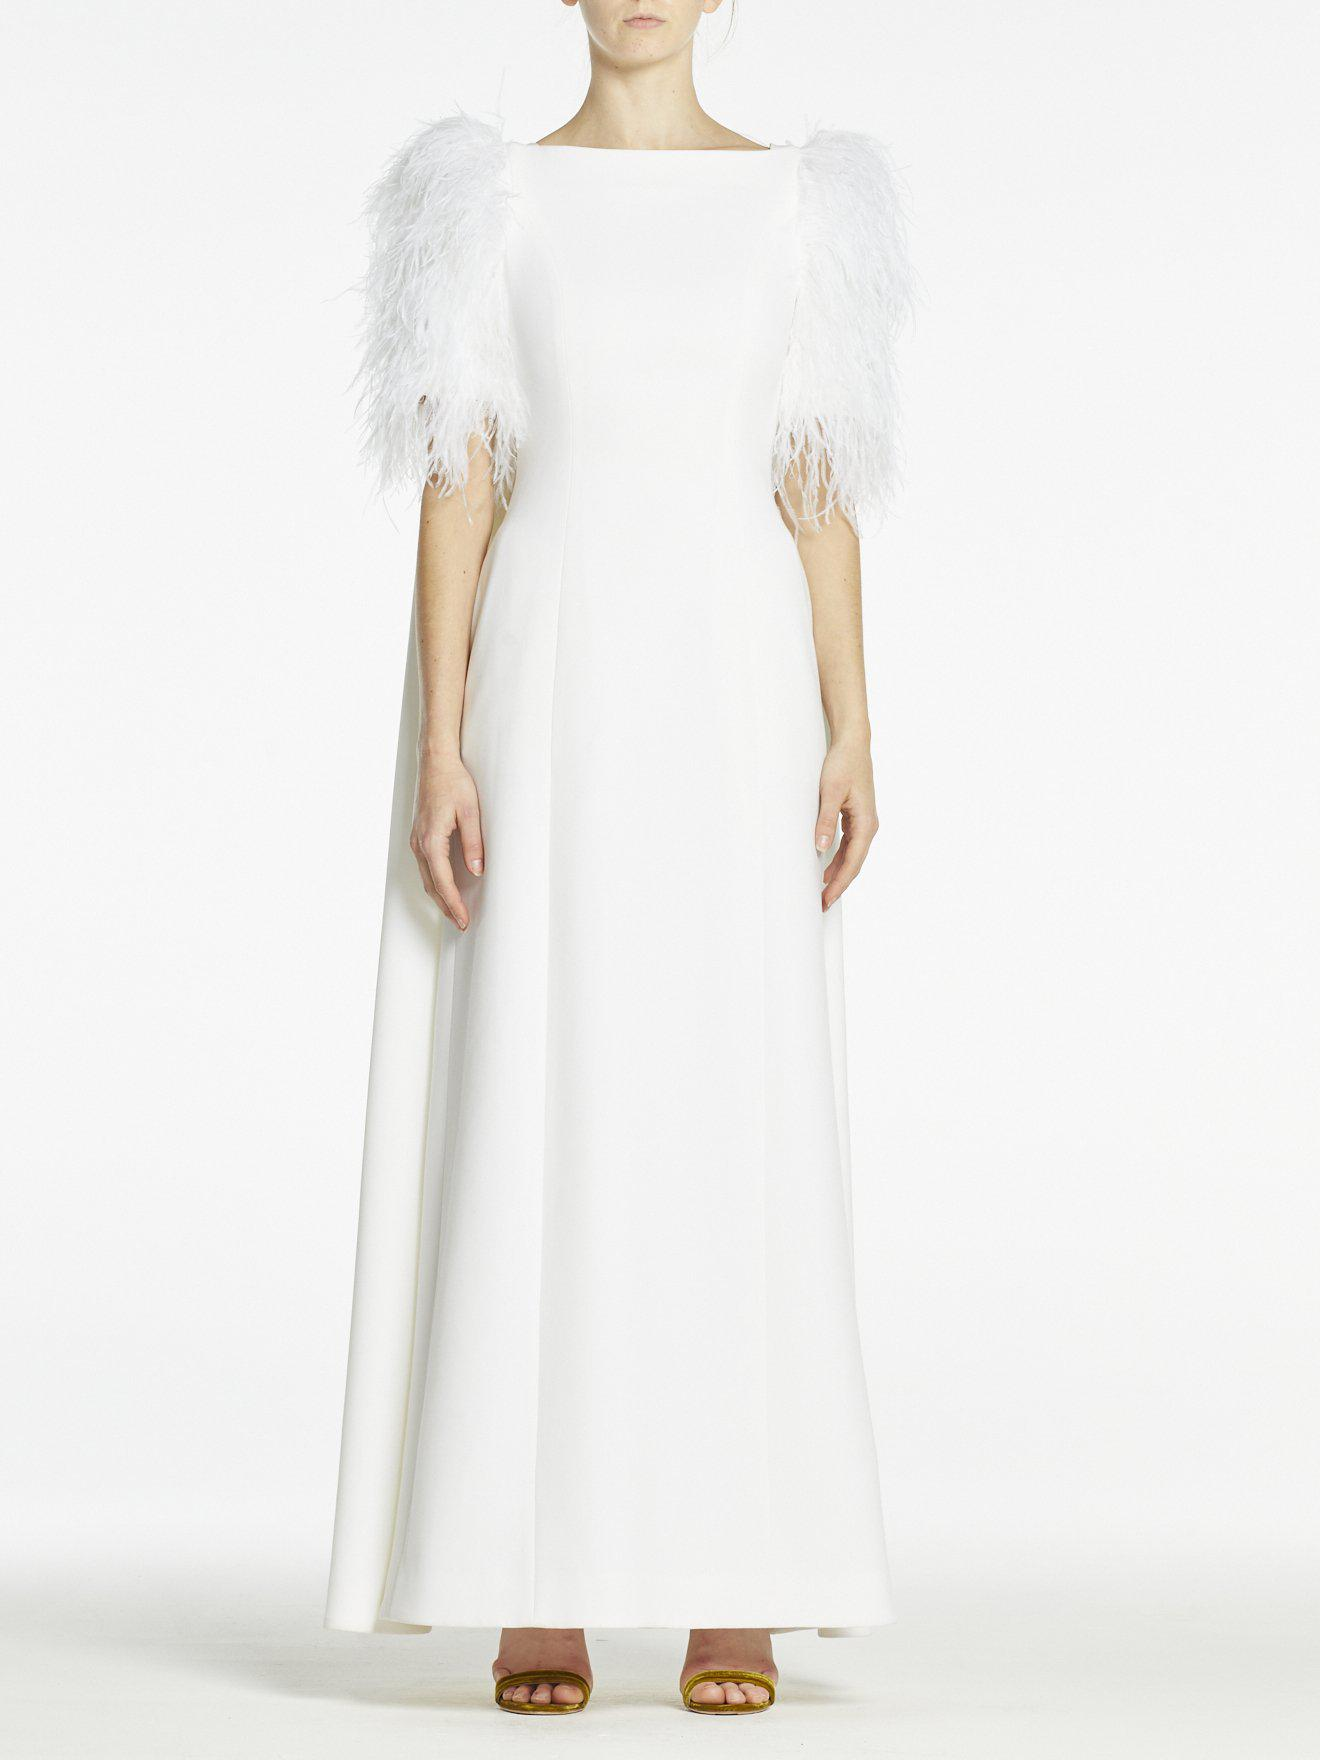 HORTENSE GOWN PURE WHITE CREPE